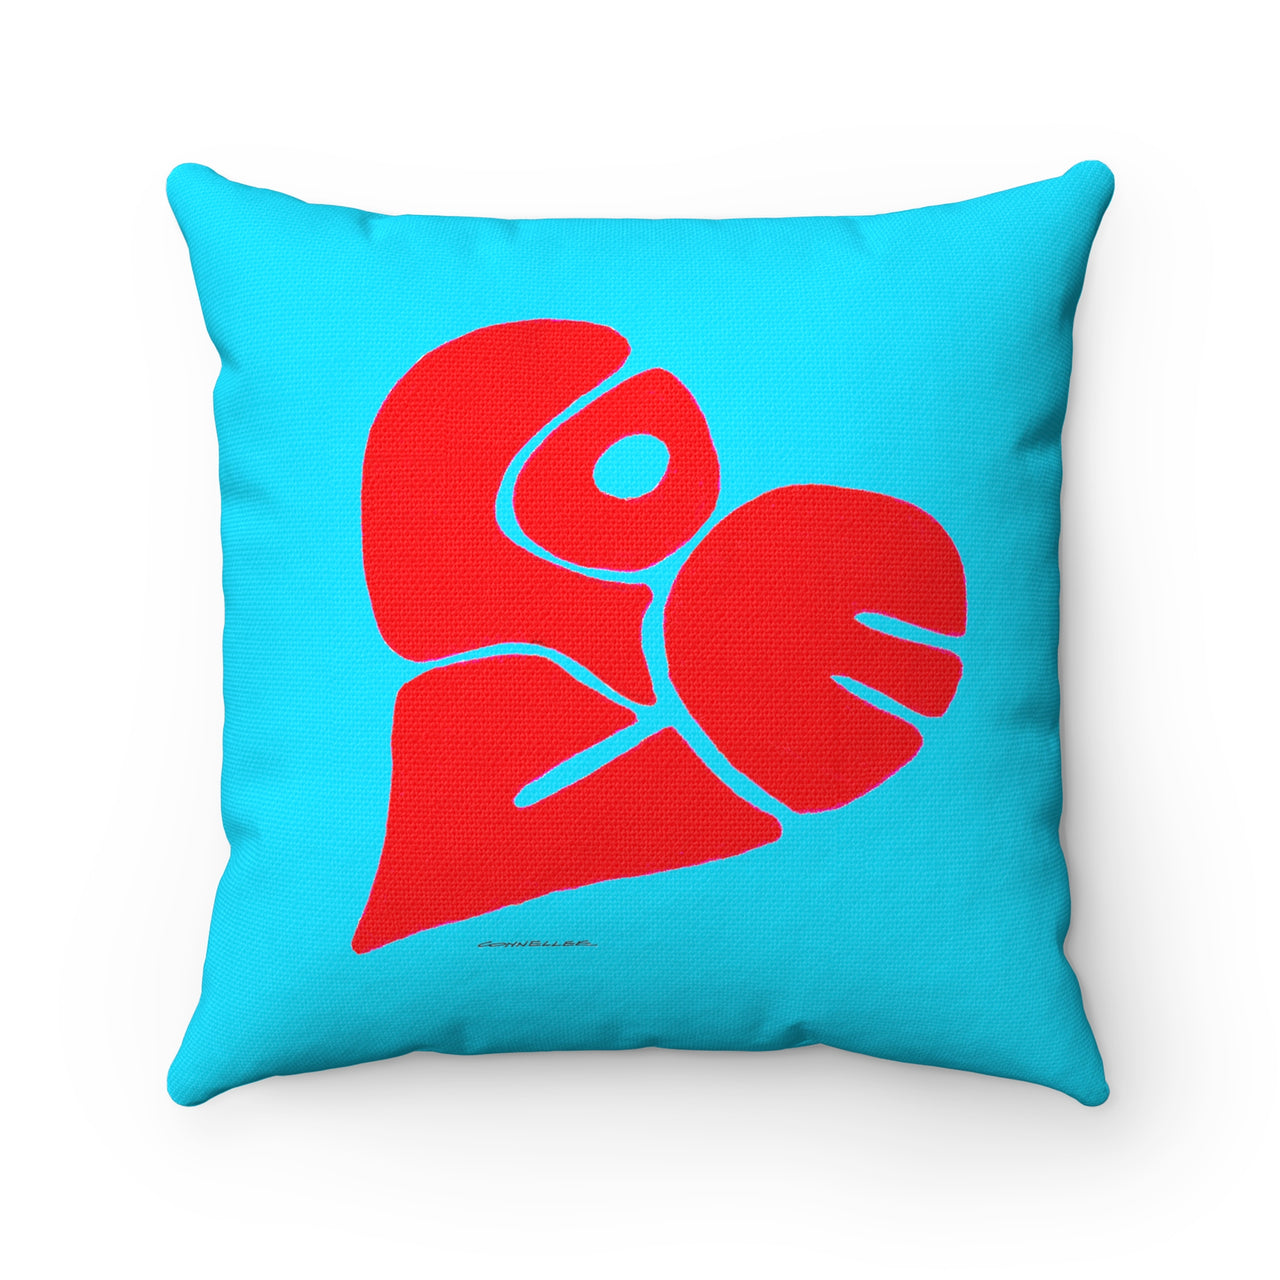 Pillow -Turquoise- Love Heart -Spun Polyester -Square - Falling Leaf Card Co.